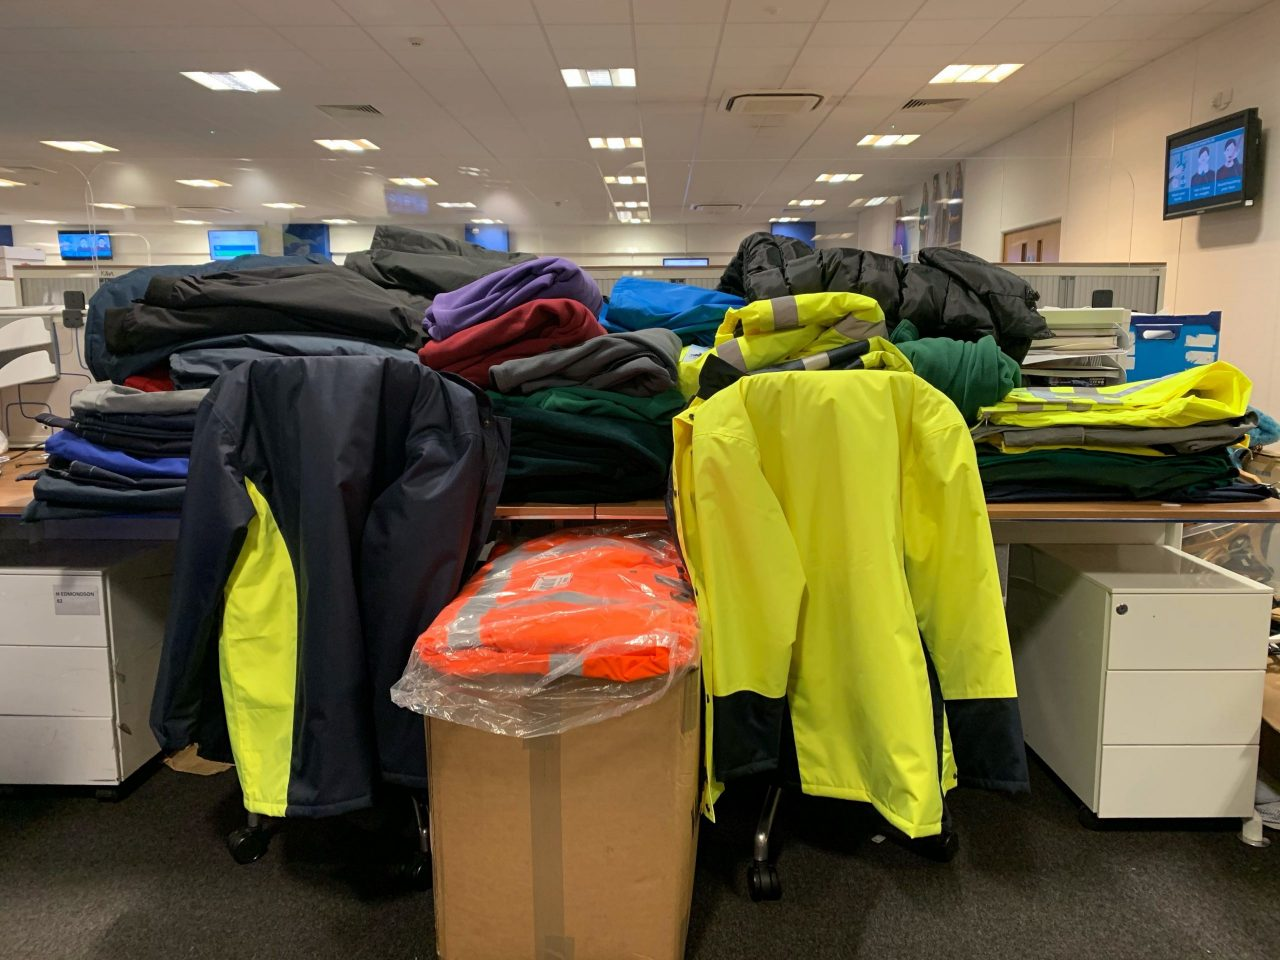 Alexandra supports local homelesscharitywith clothing donation